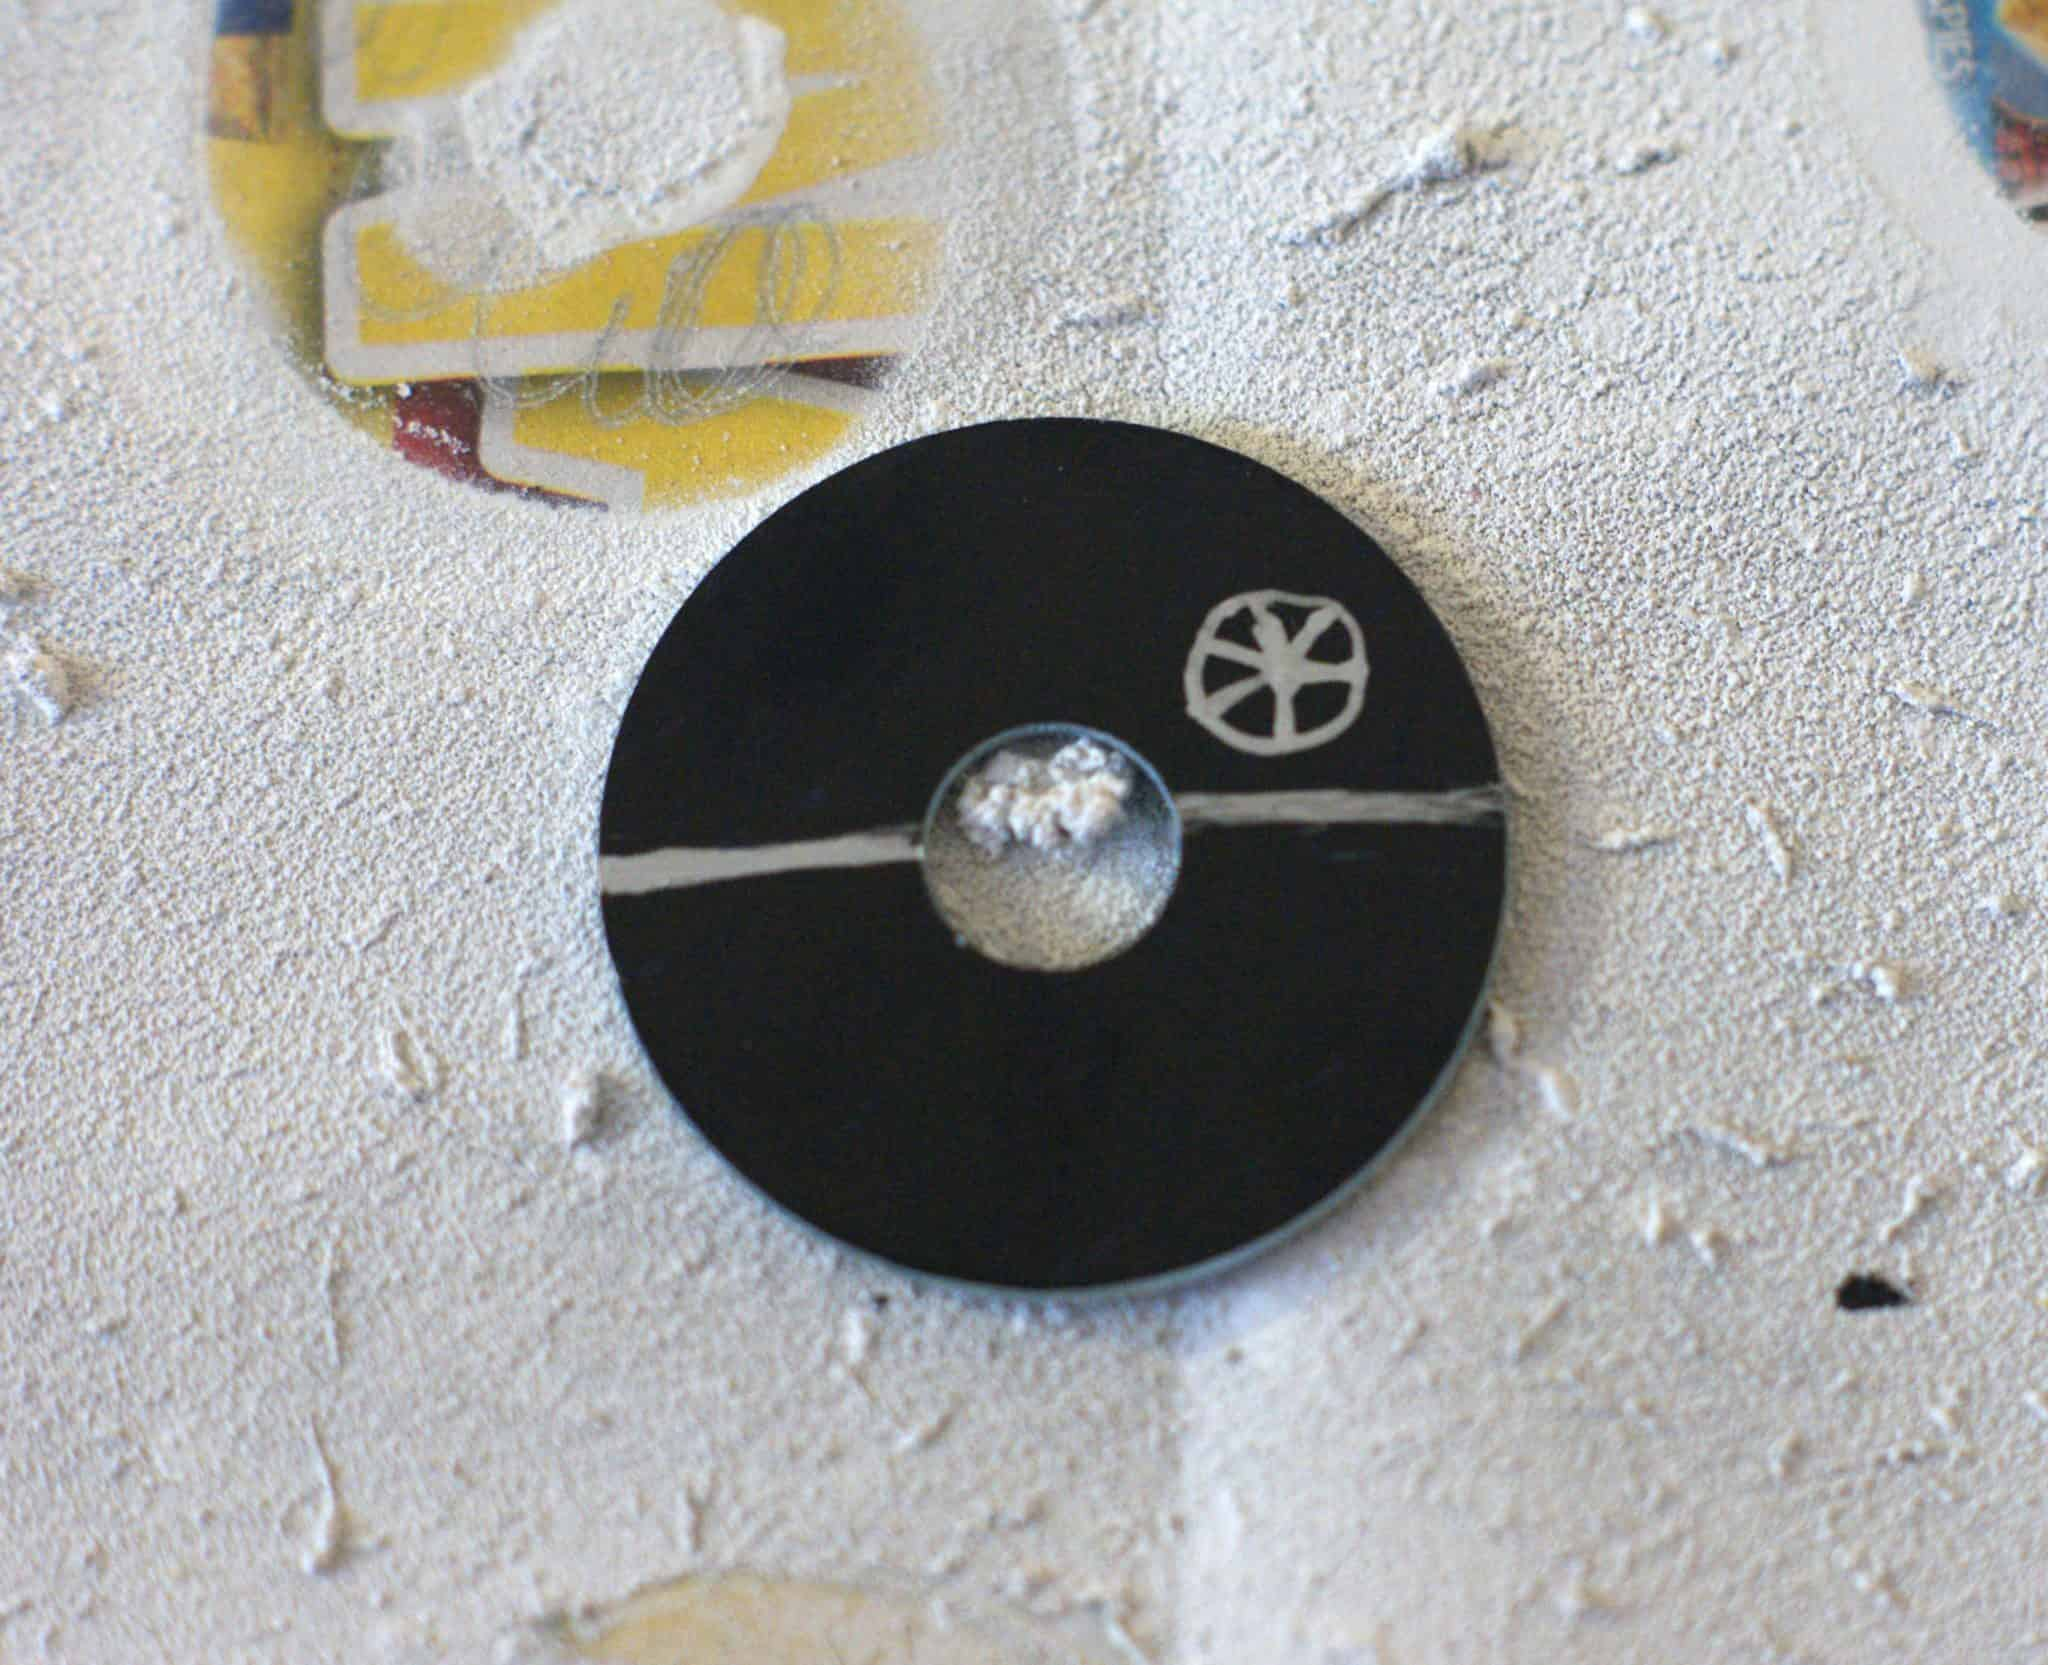 DIY Death Star Washer Necklace